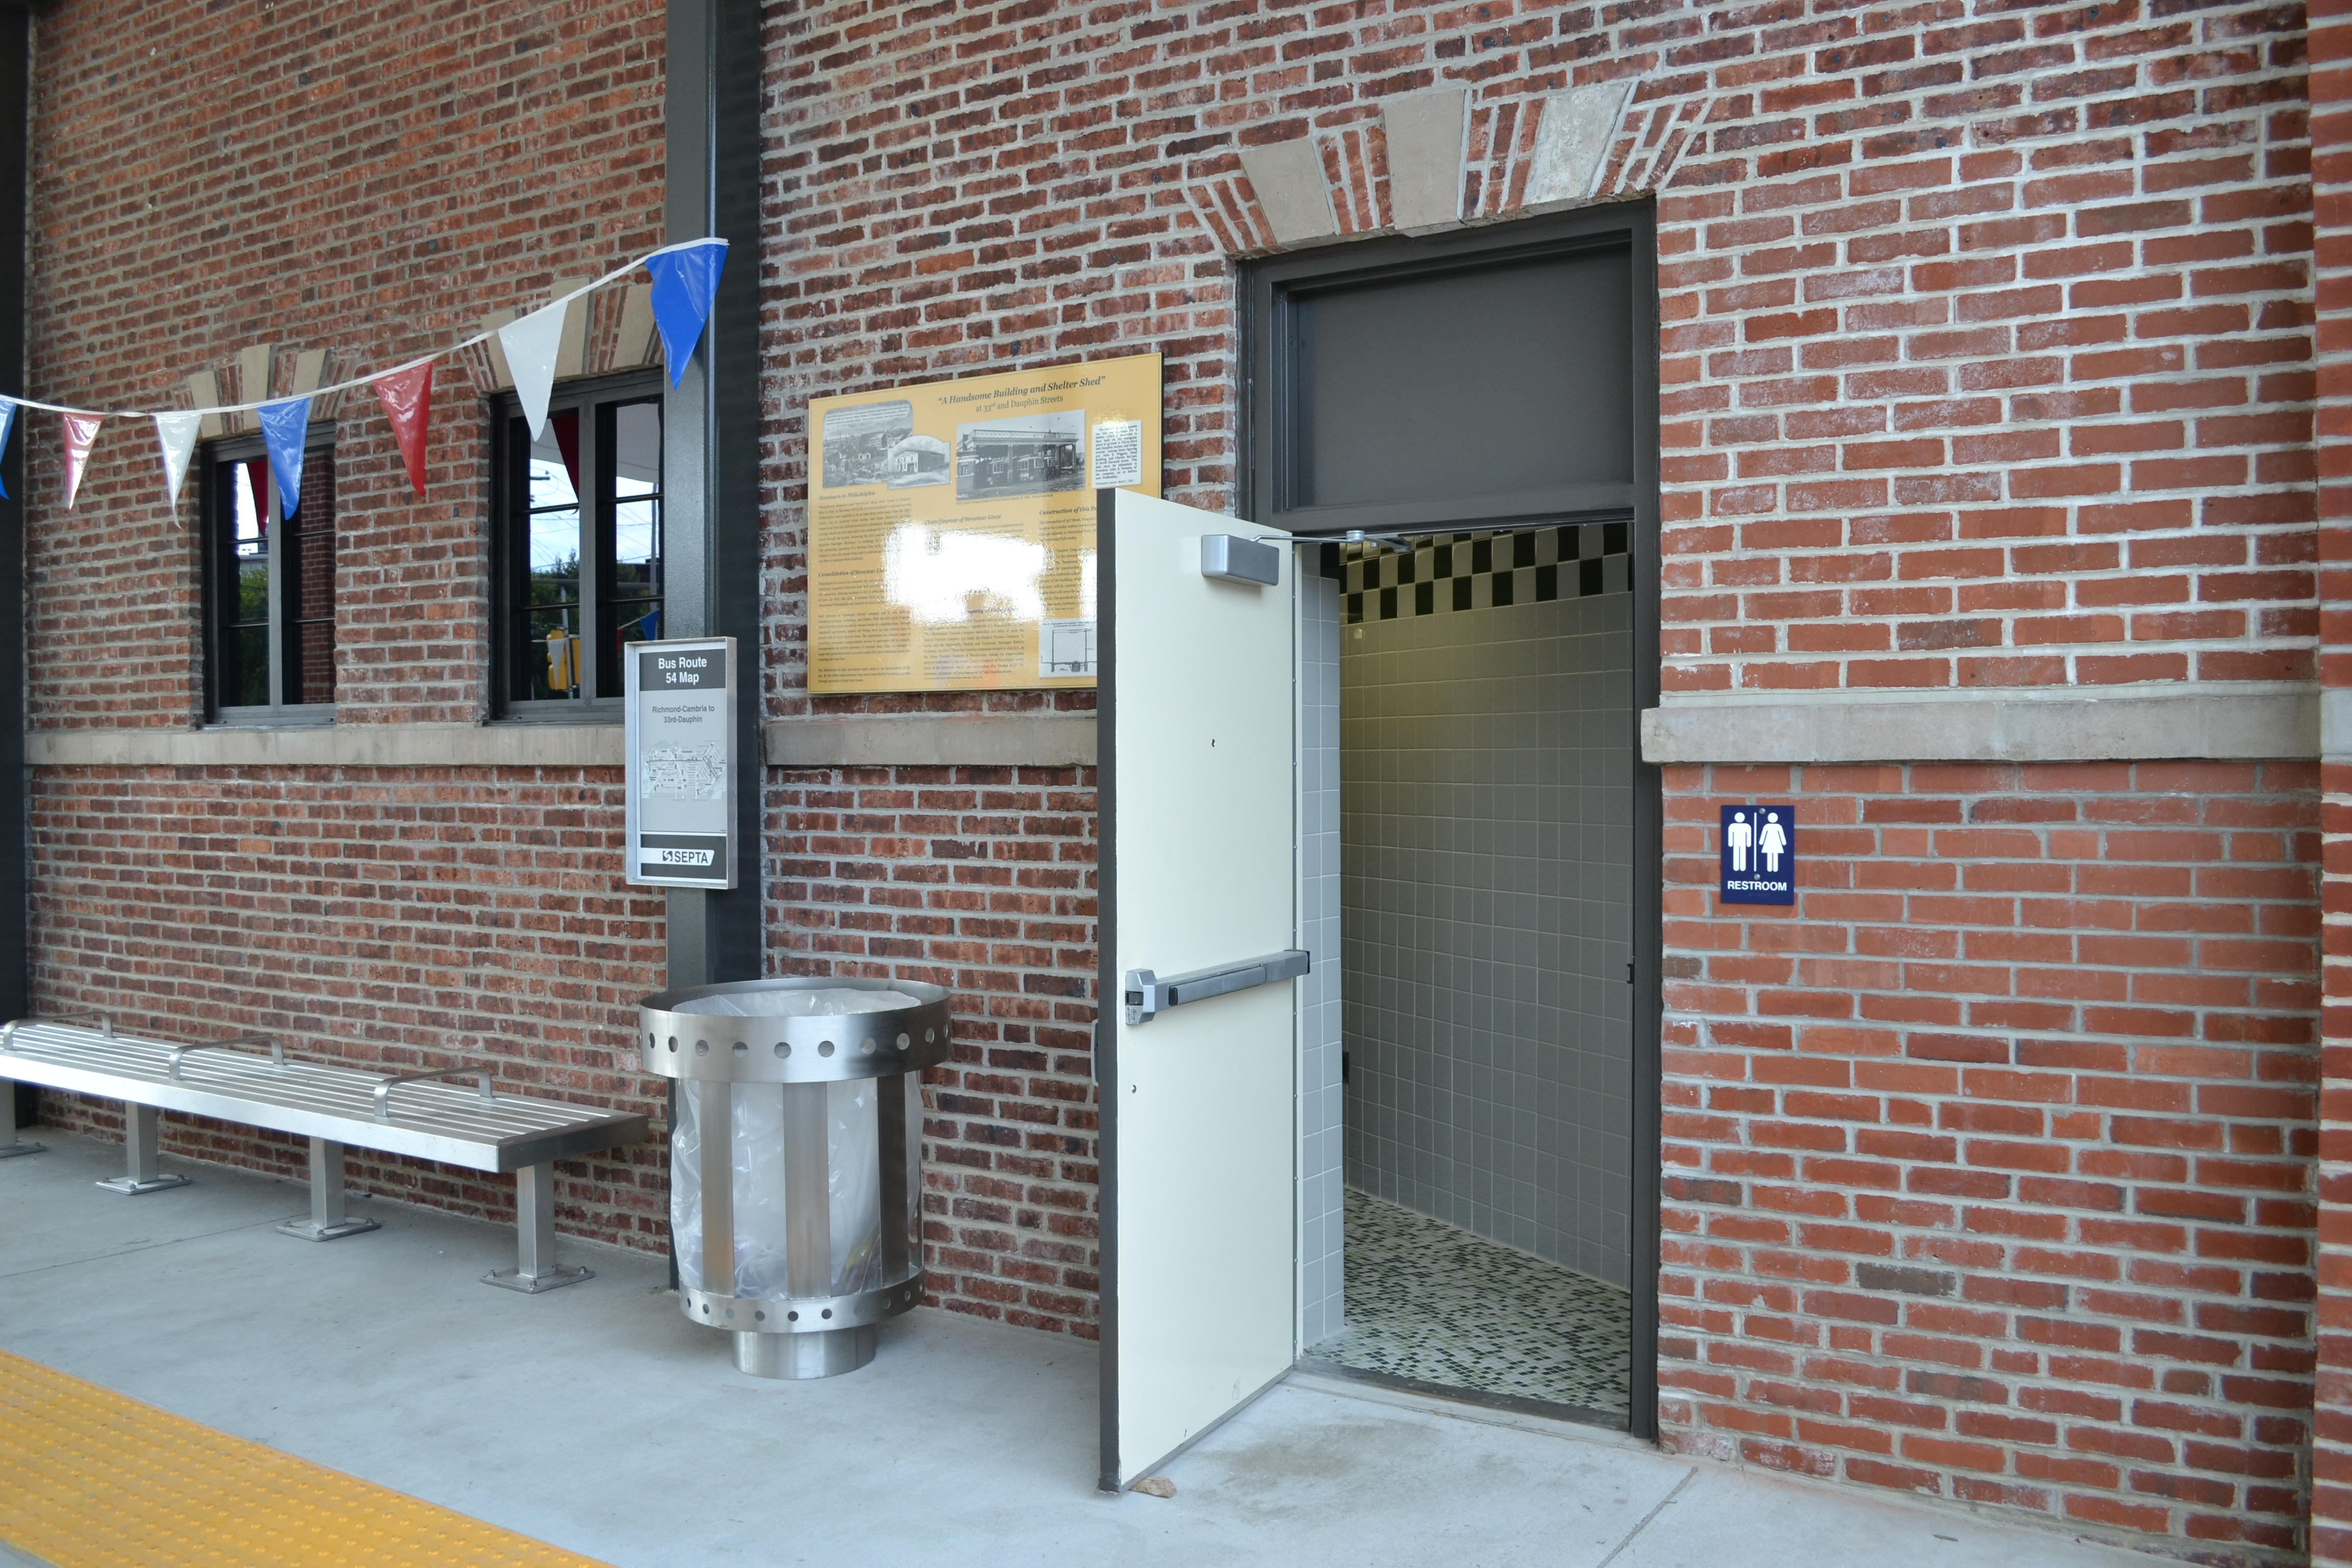 In addition to shelter, the bus loop provides bathrooms for passengers and SEPTA employees